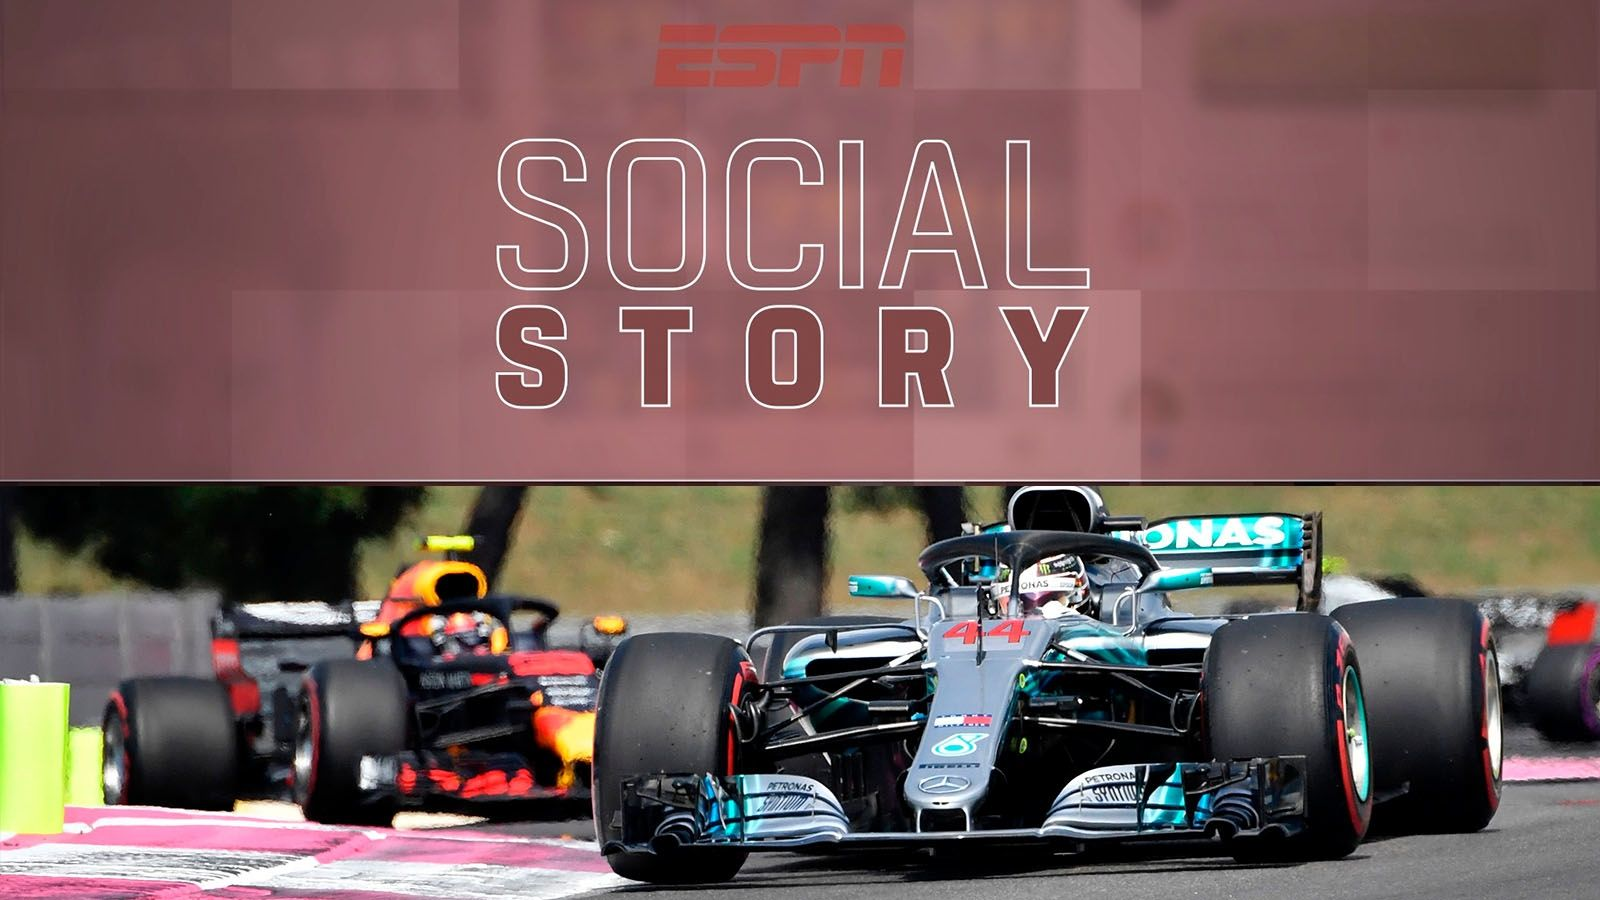 Social story of the French Grand Prix